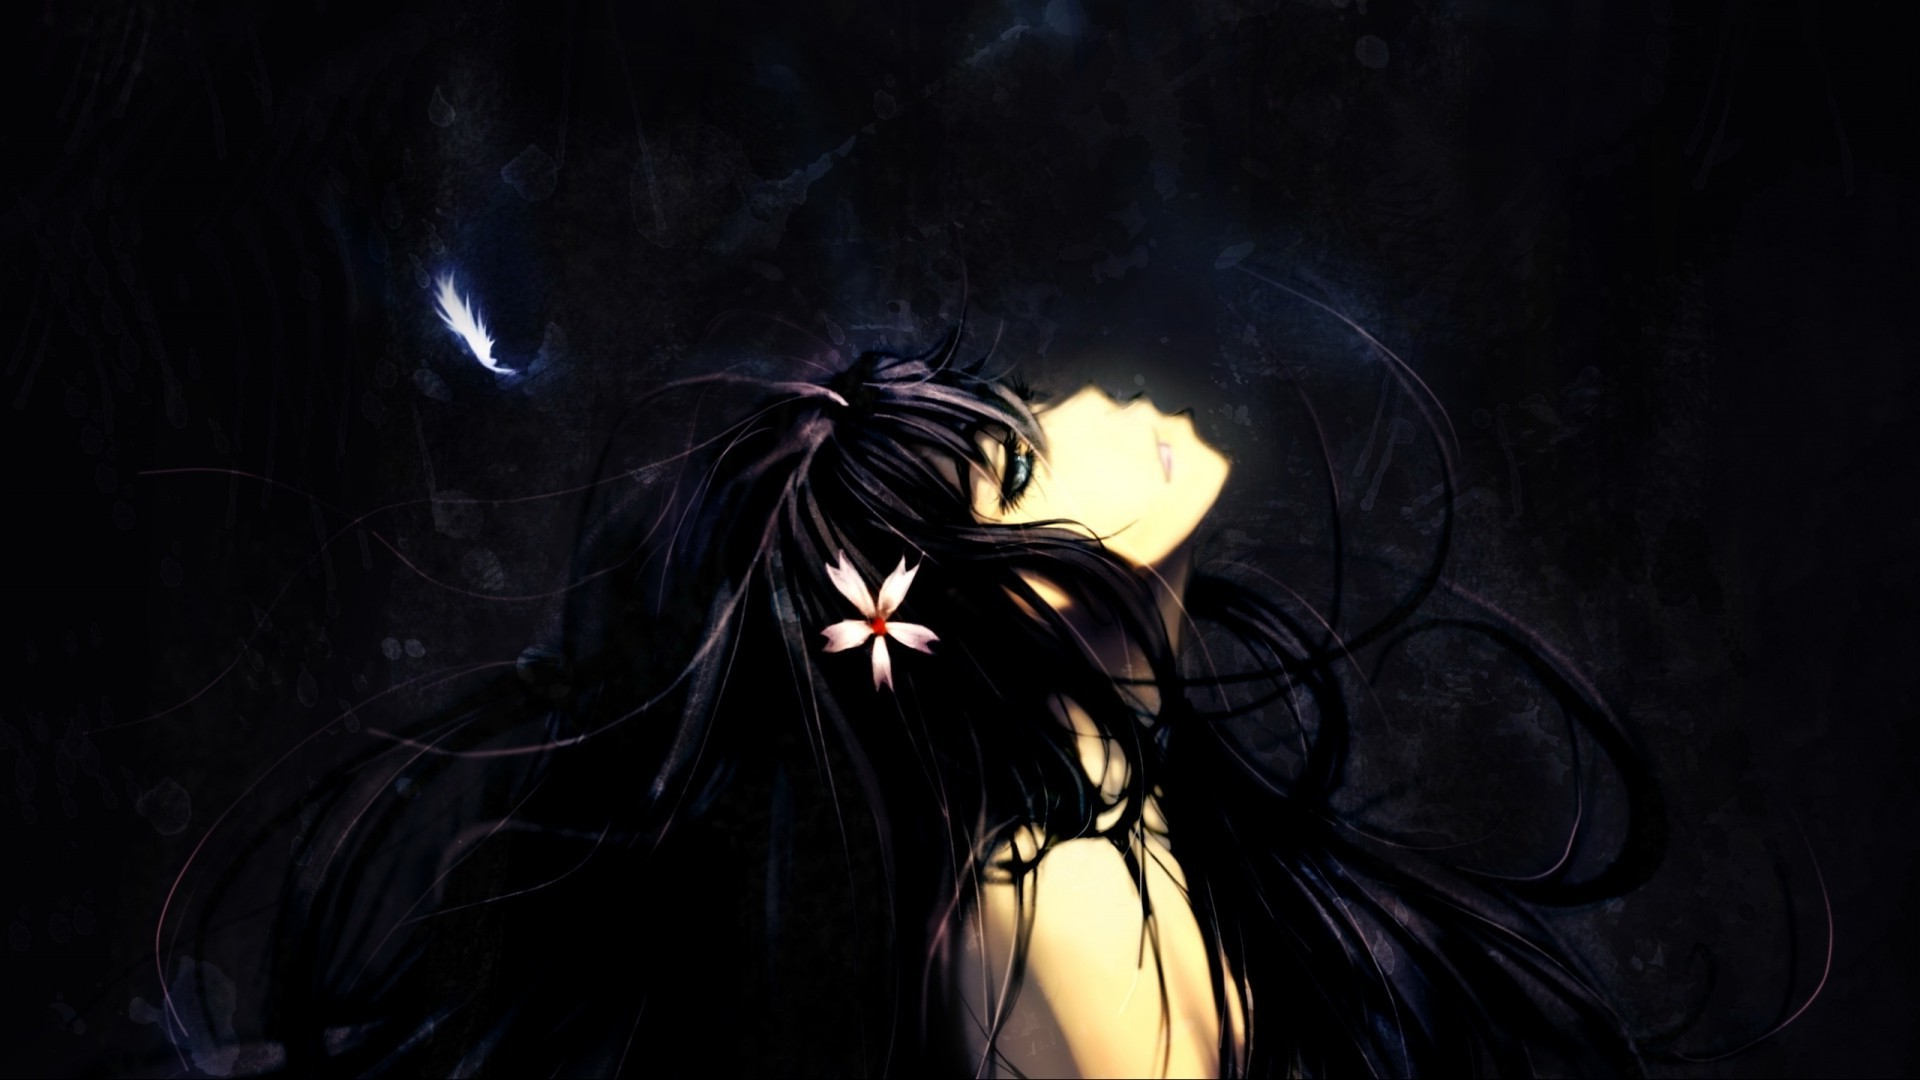 Dark anime wallpaper hd 66 images - Dark anime background ...